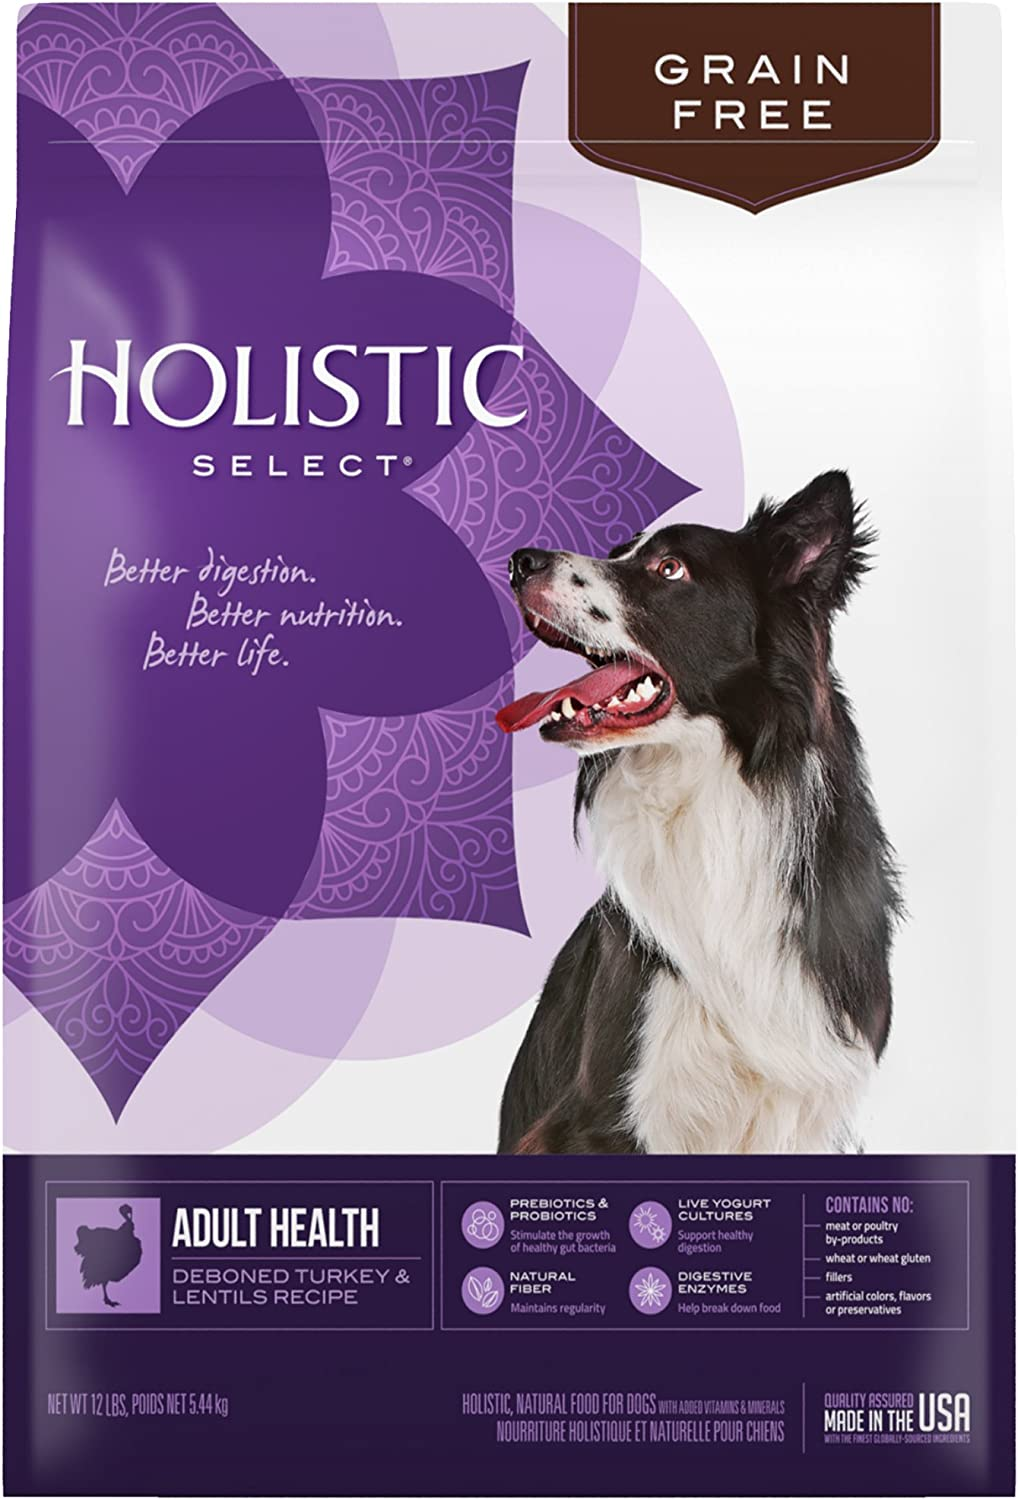 Holistic Select Grain Free Turkey Natural Dry Dog Food, 13Pound Bag